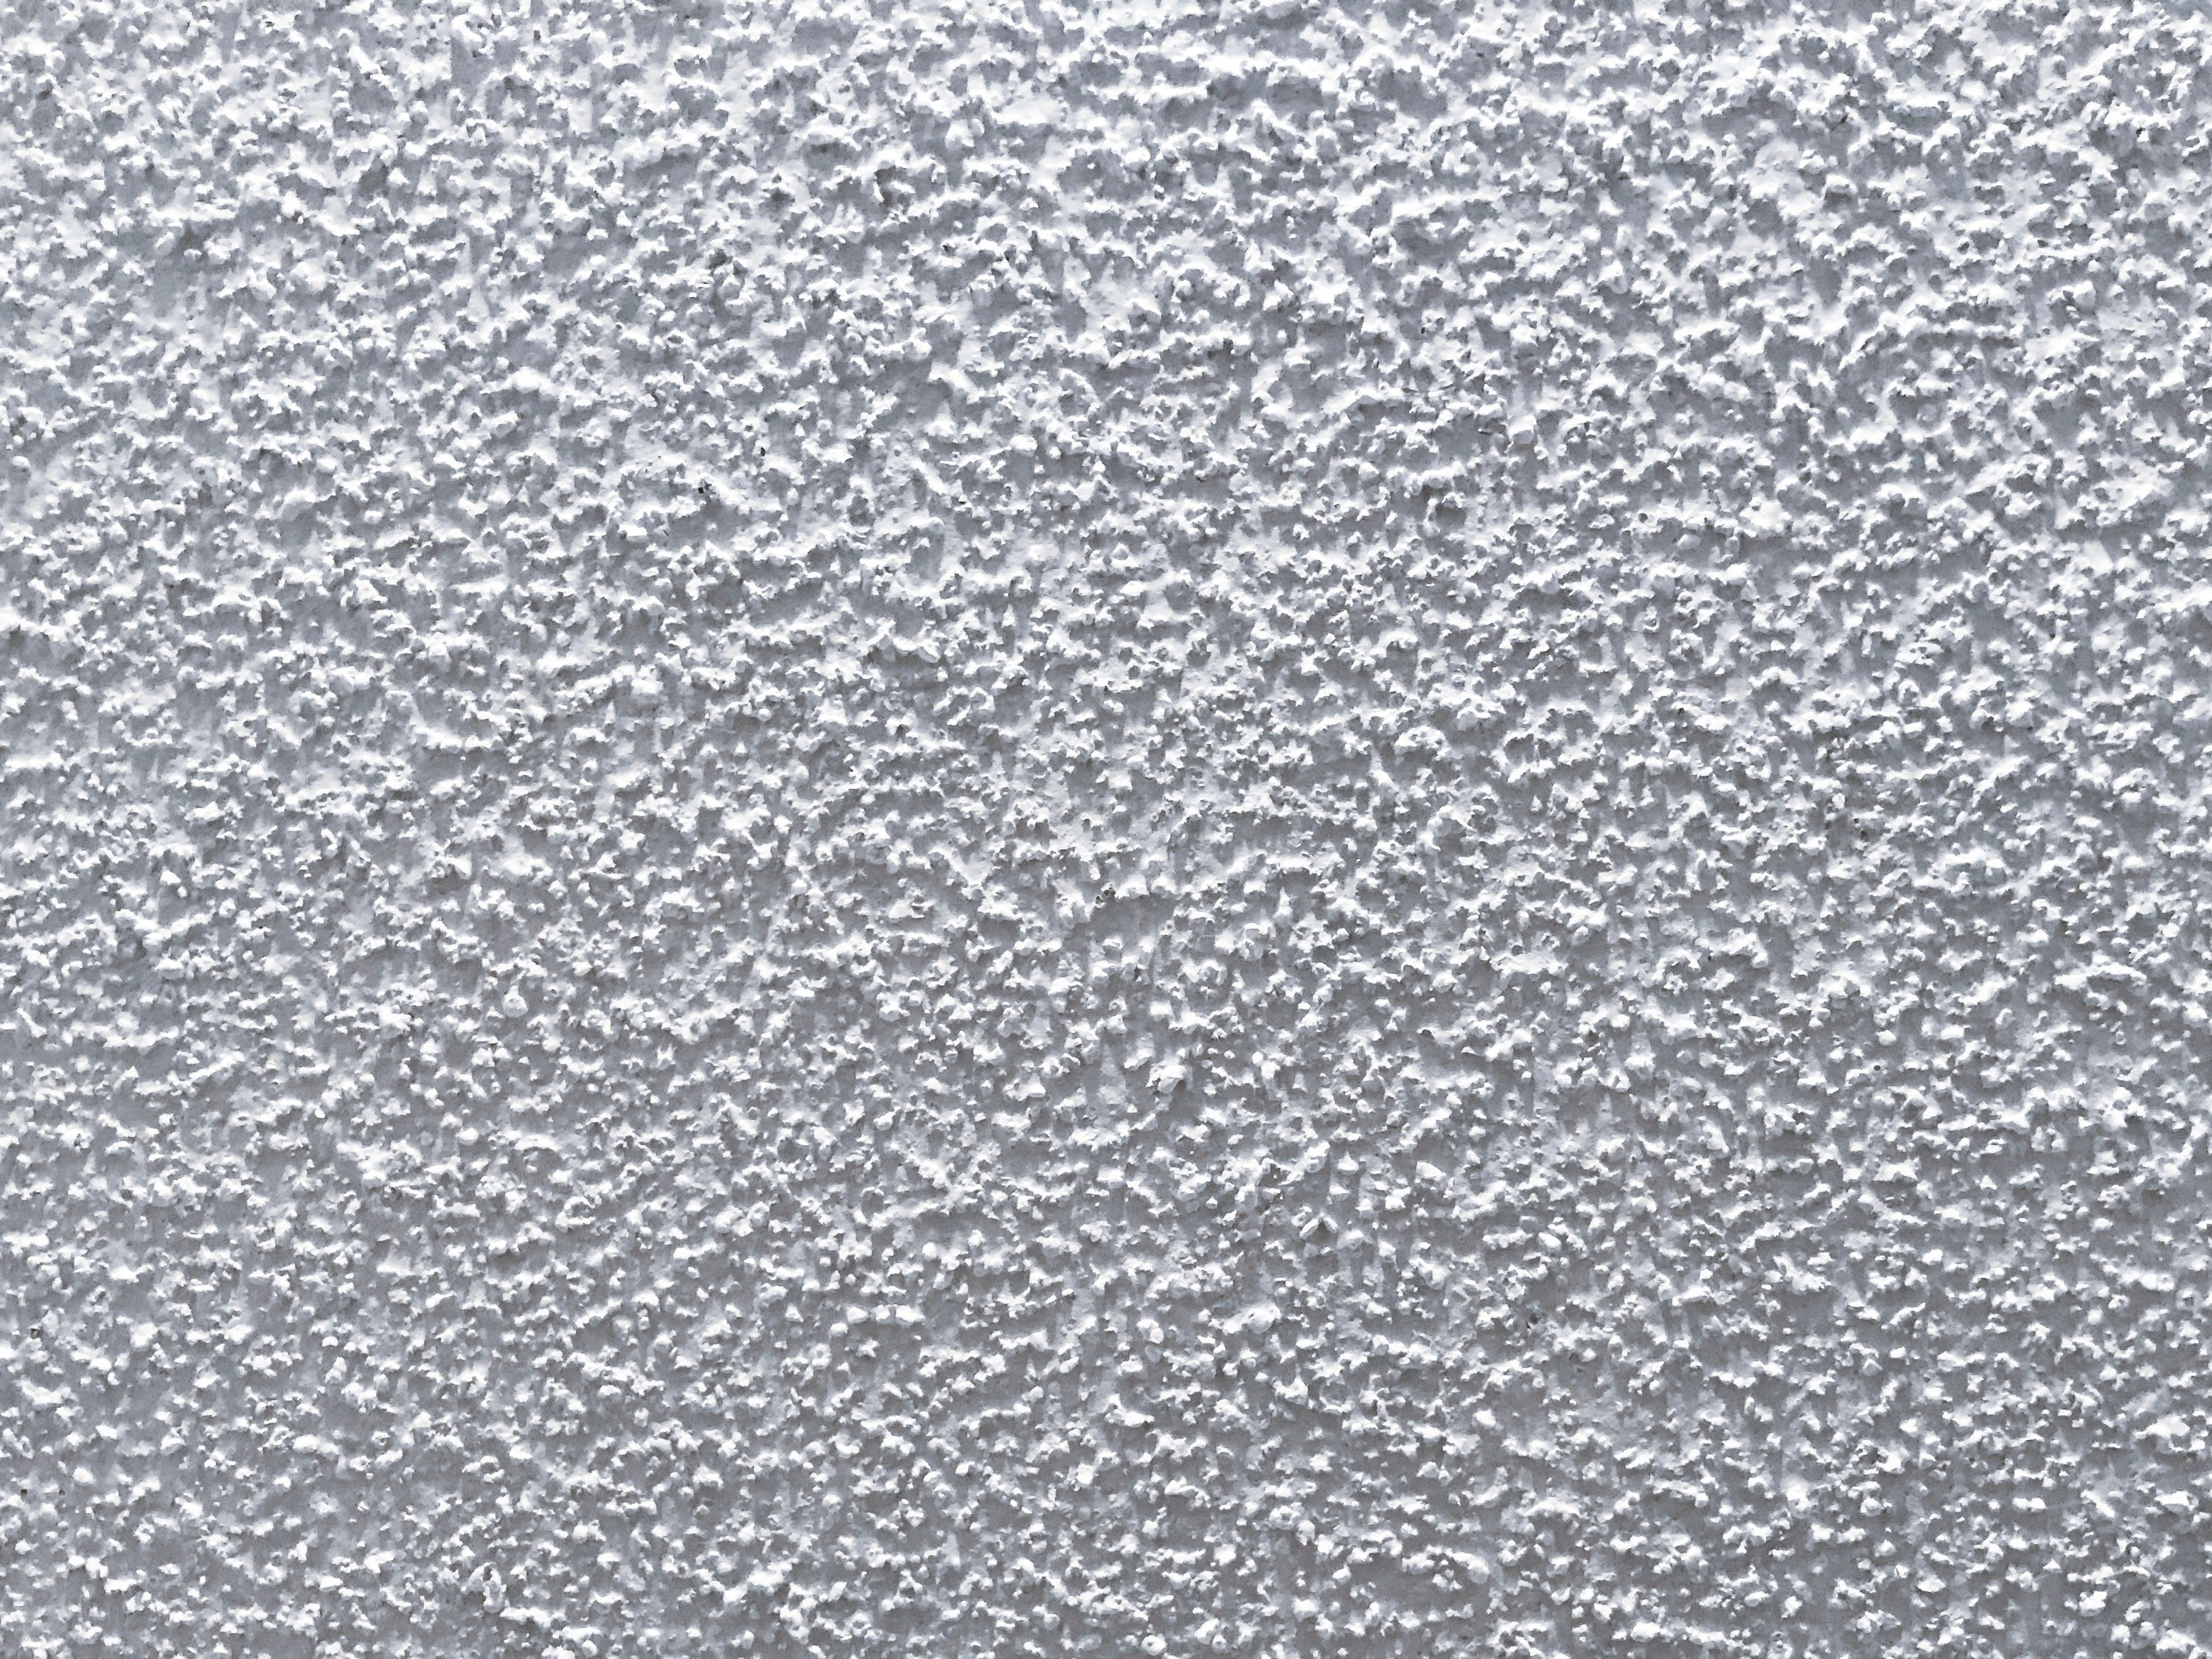 How to Remove Popcorn Ceilings in 5 Simple Steps ...